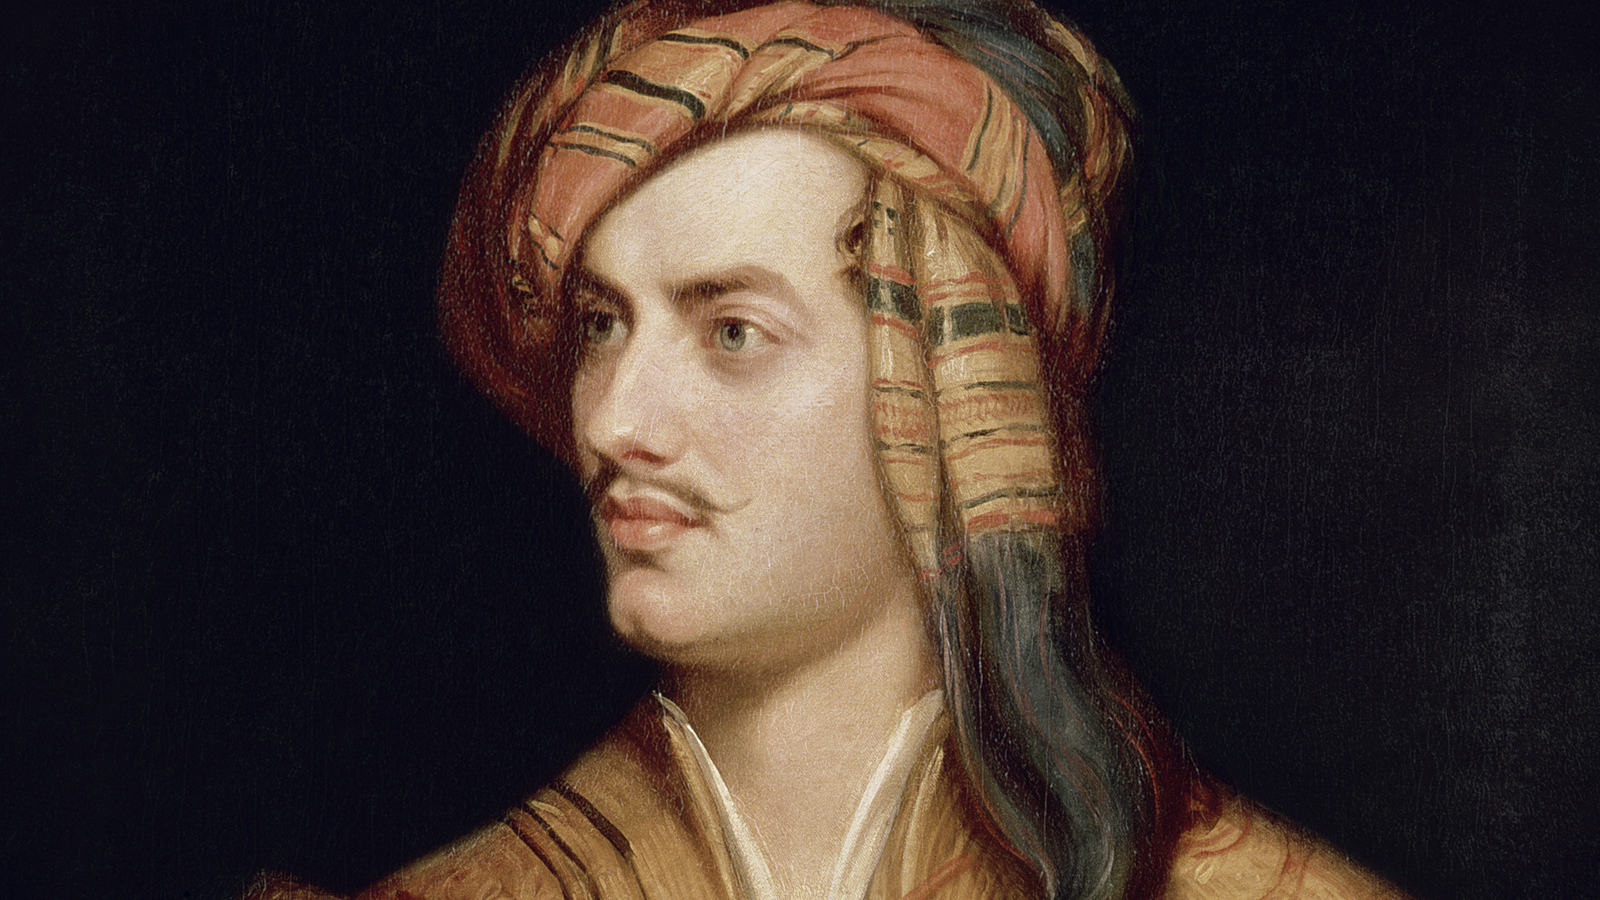 Lord Byron, 19th-century bad boy